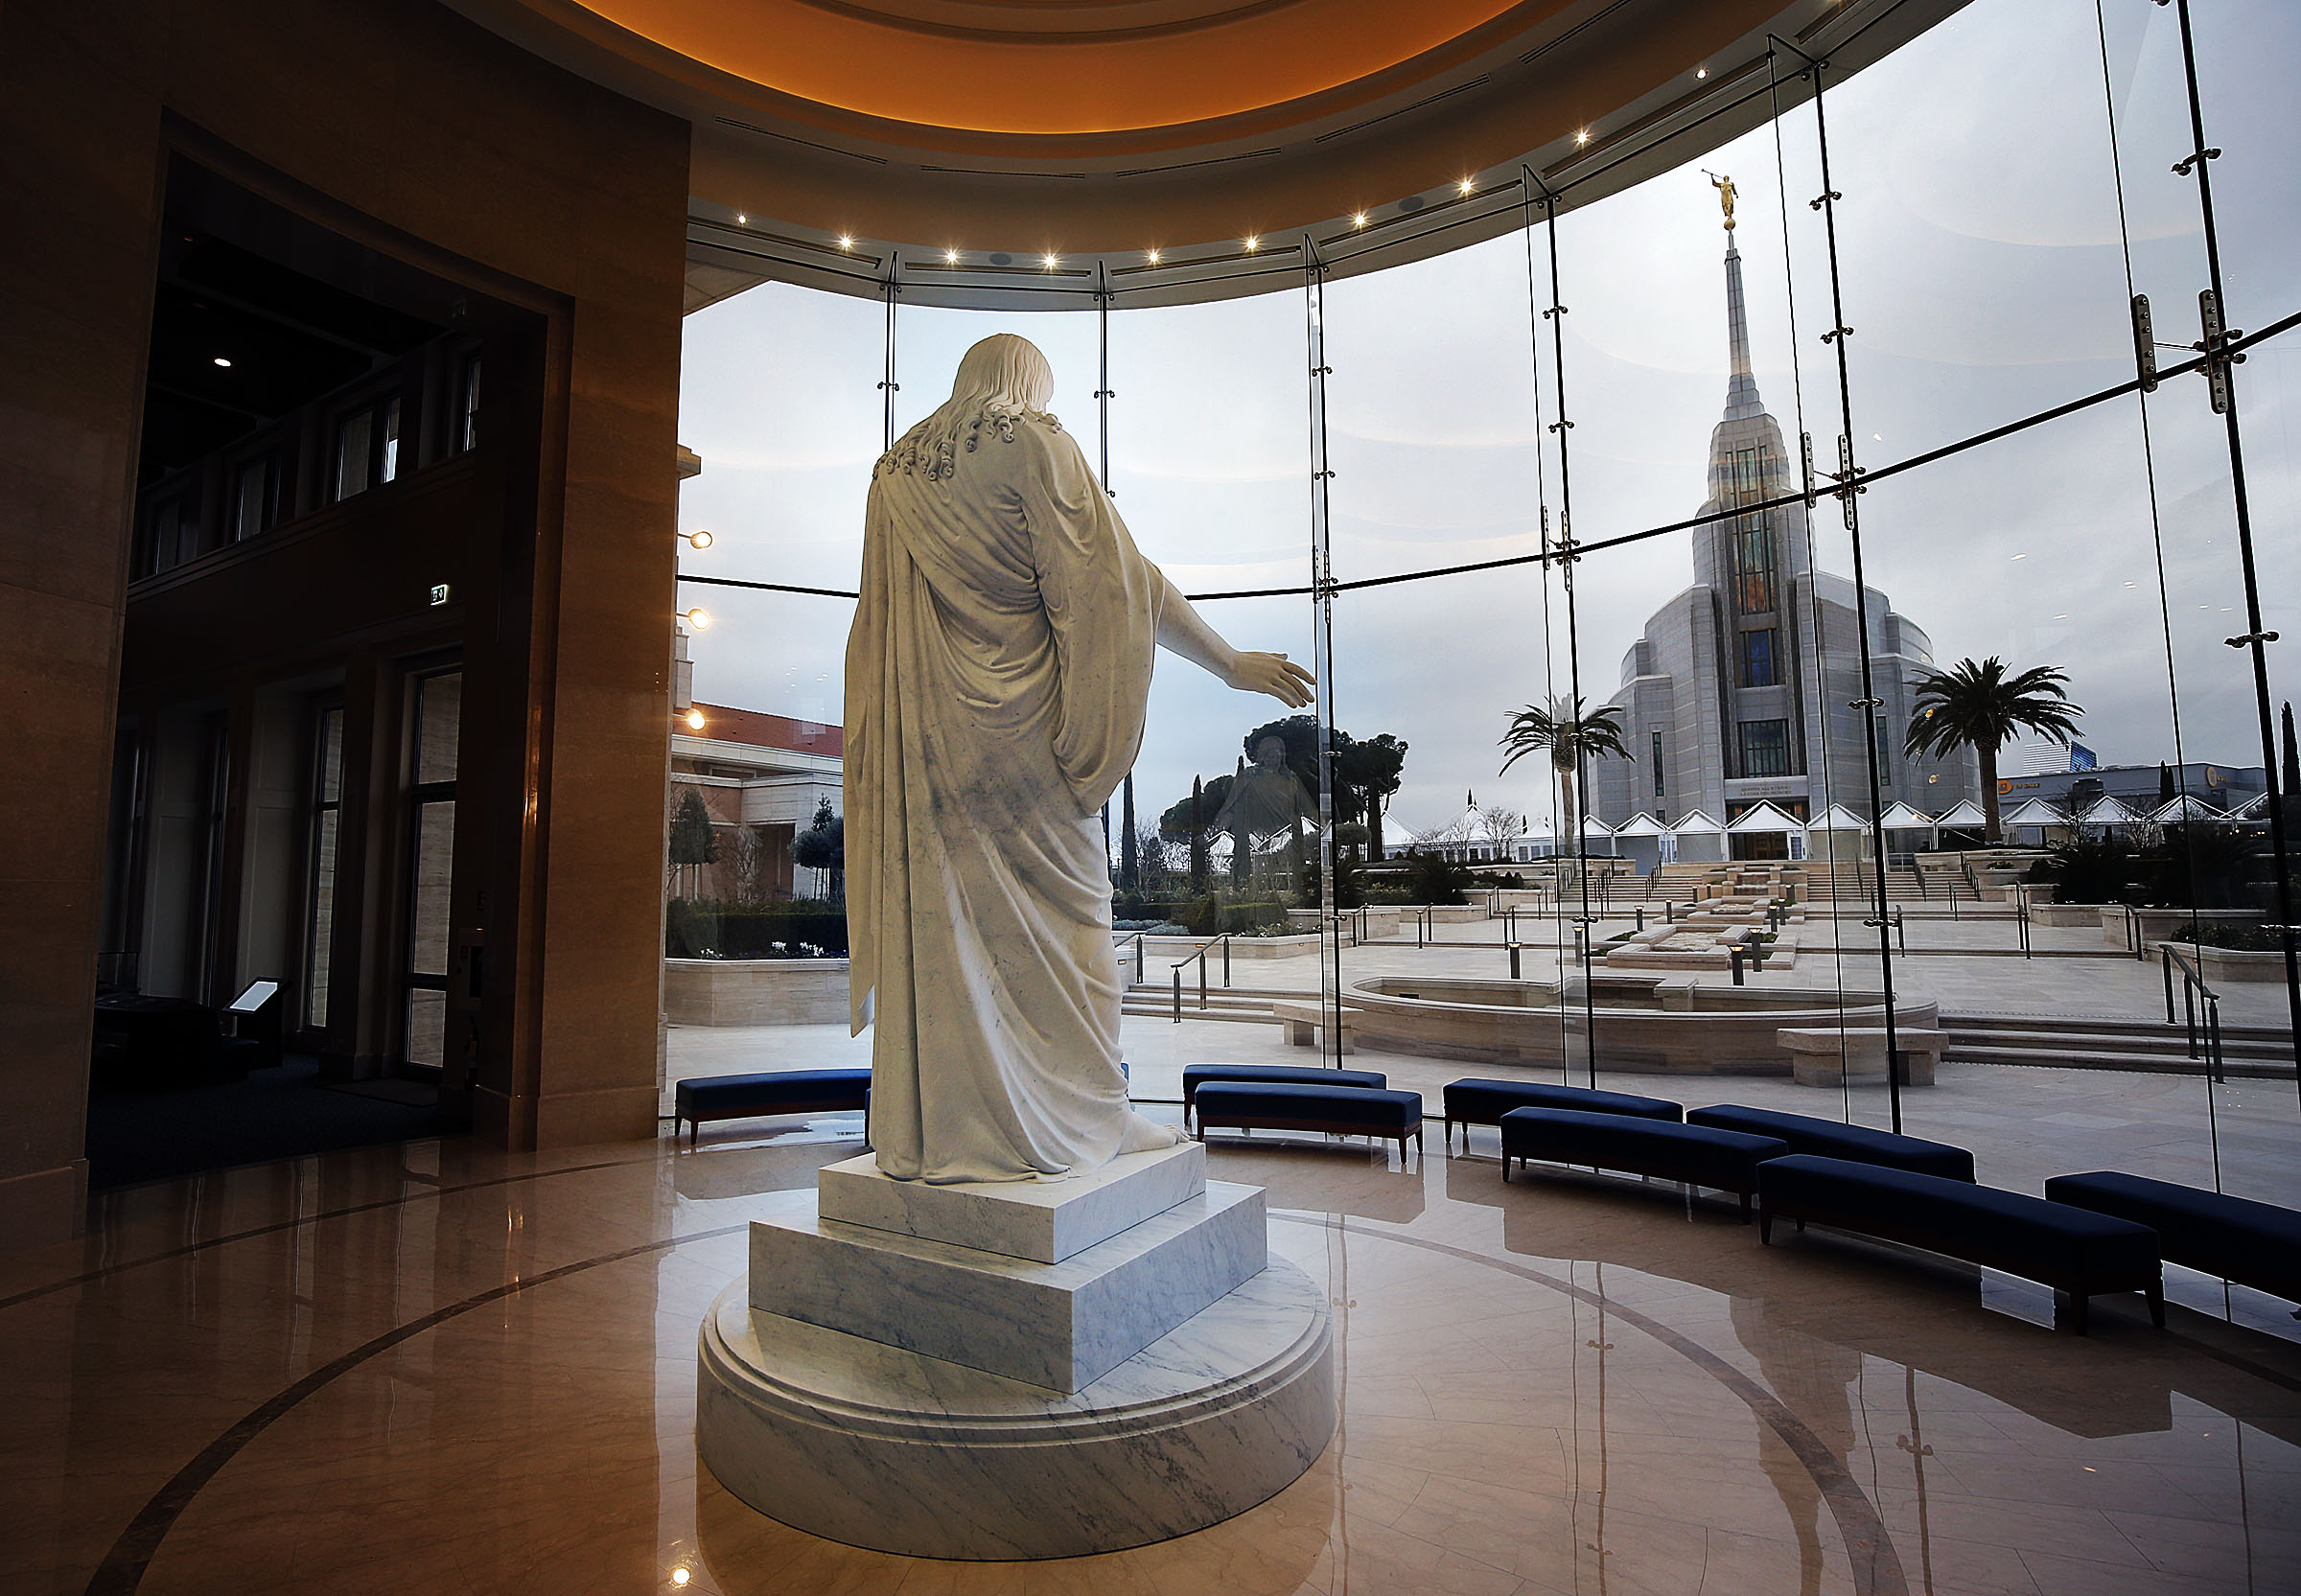 A statue of Christ is seen in the Rome Temple Visitors' Center of The Church of Jesus Christ of Latter-day Saints in Rome on Sunday, Jan. 13, 2019. In the background is the Rome Italy Temple.